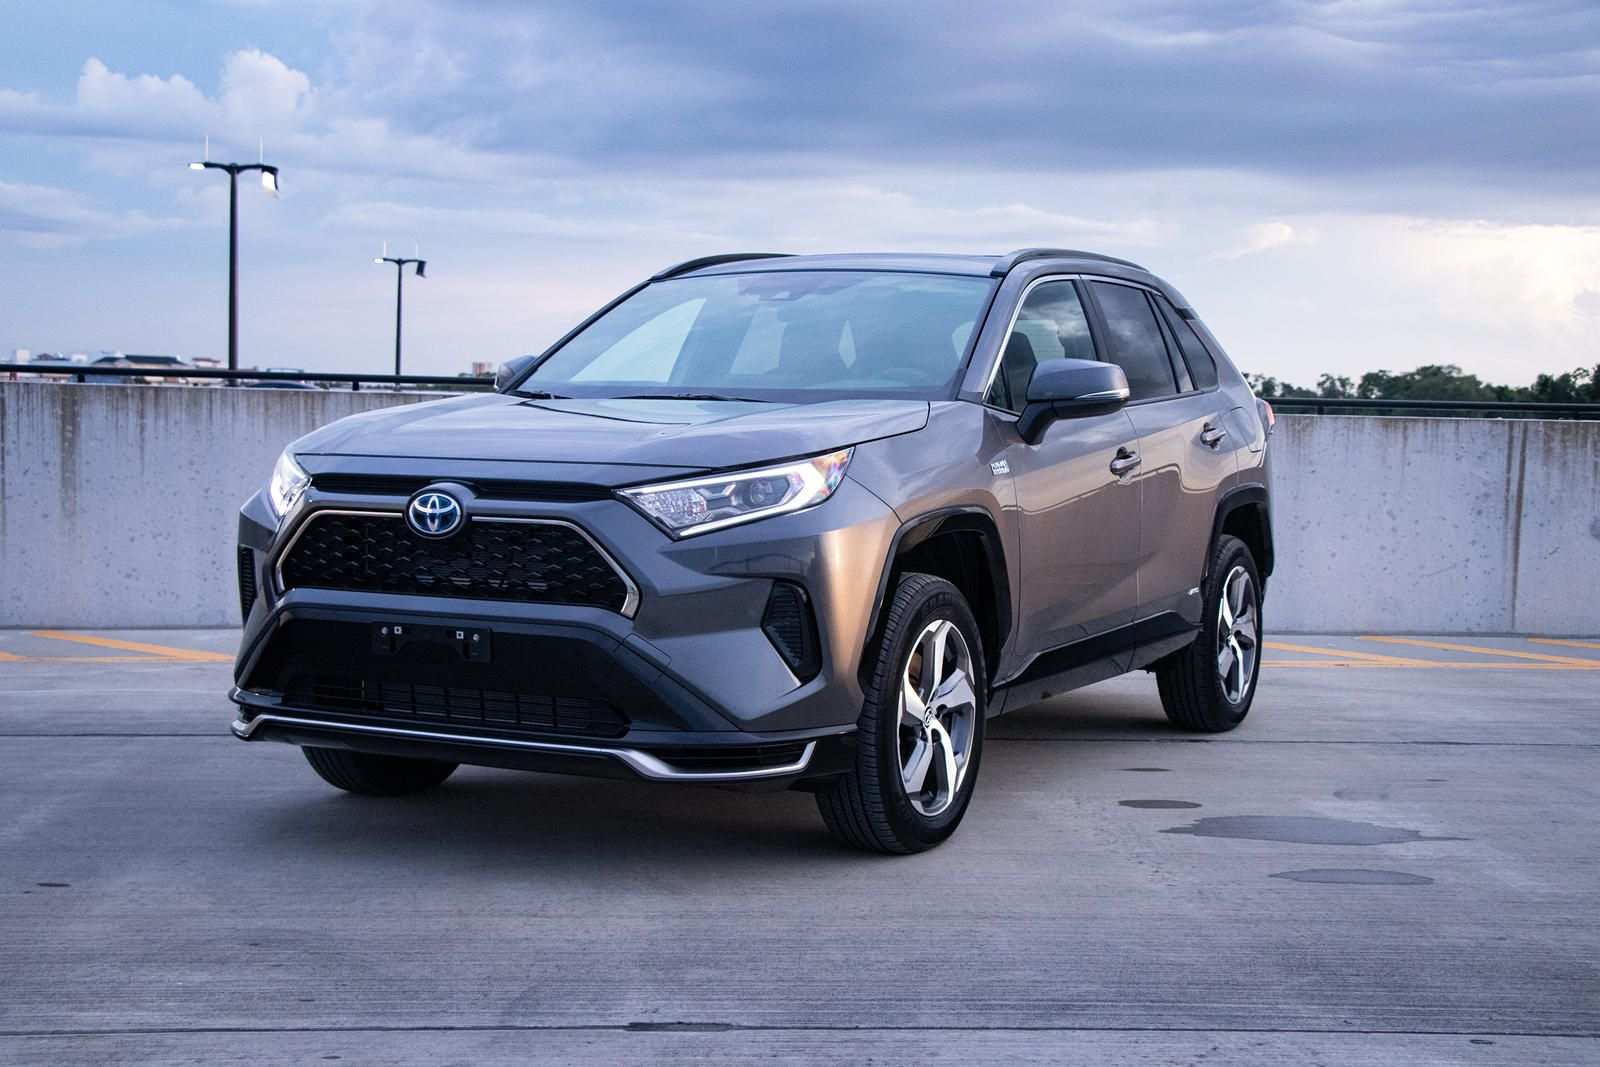 2021 Toyota Rav4 Prime Test Drive Review Plug In Is The New V8 In 2020 Toyota Rav4 Toyota New Toyota Rav4